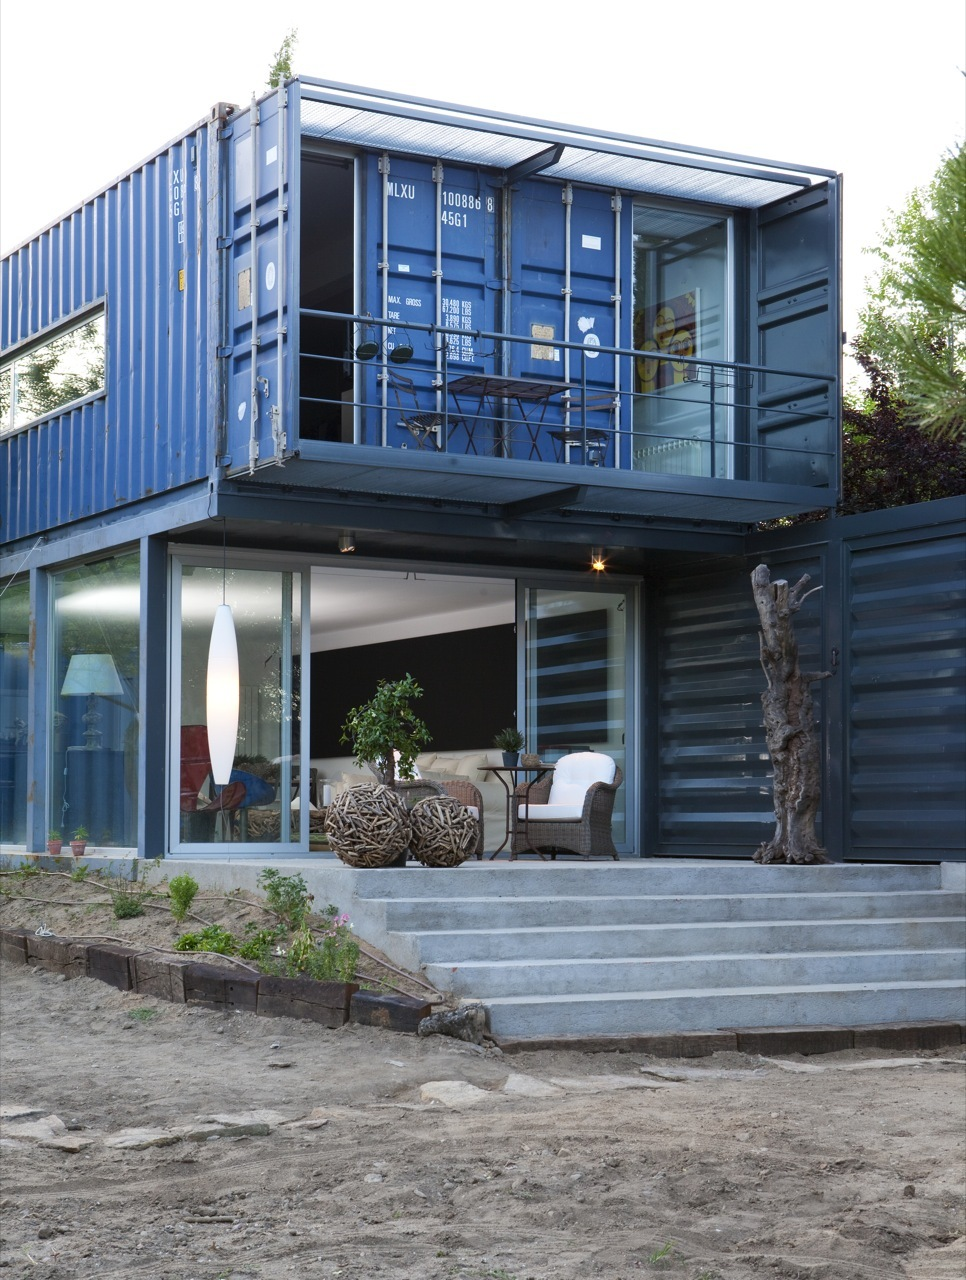 Shipping container homes two story container house in el tiemblo spain - Shipping container homes chicago ...